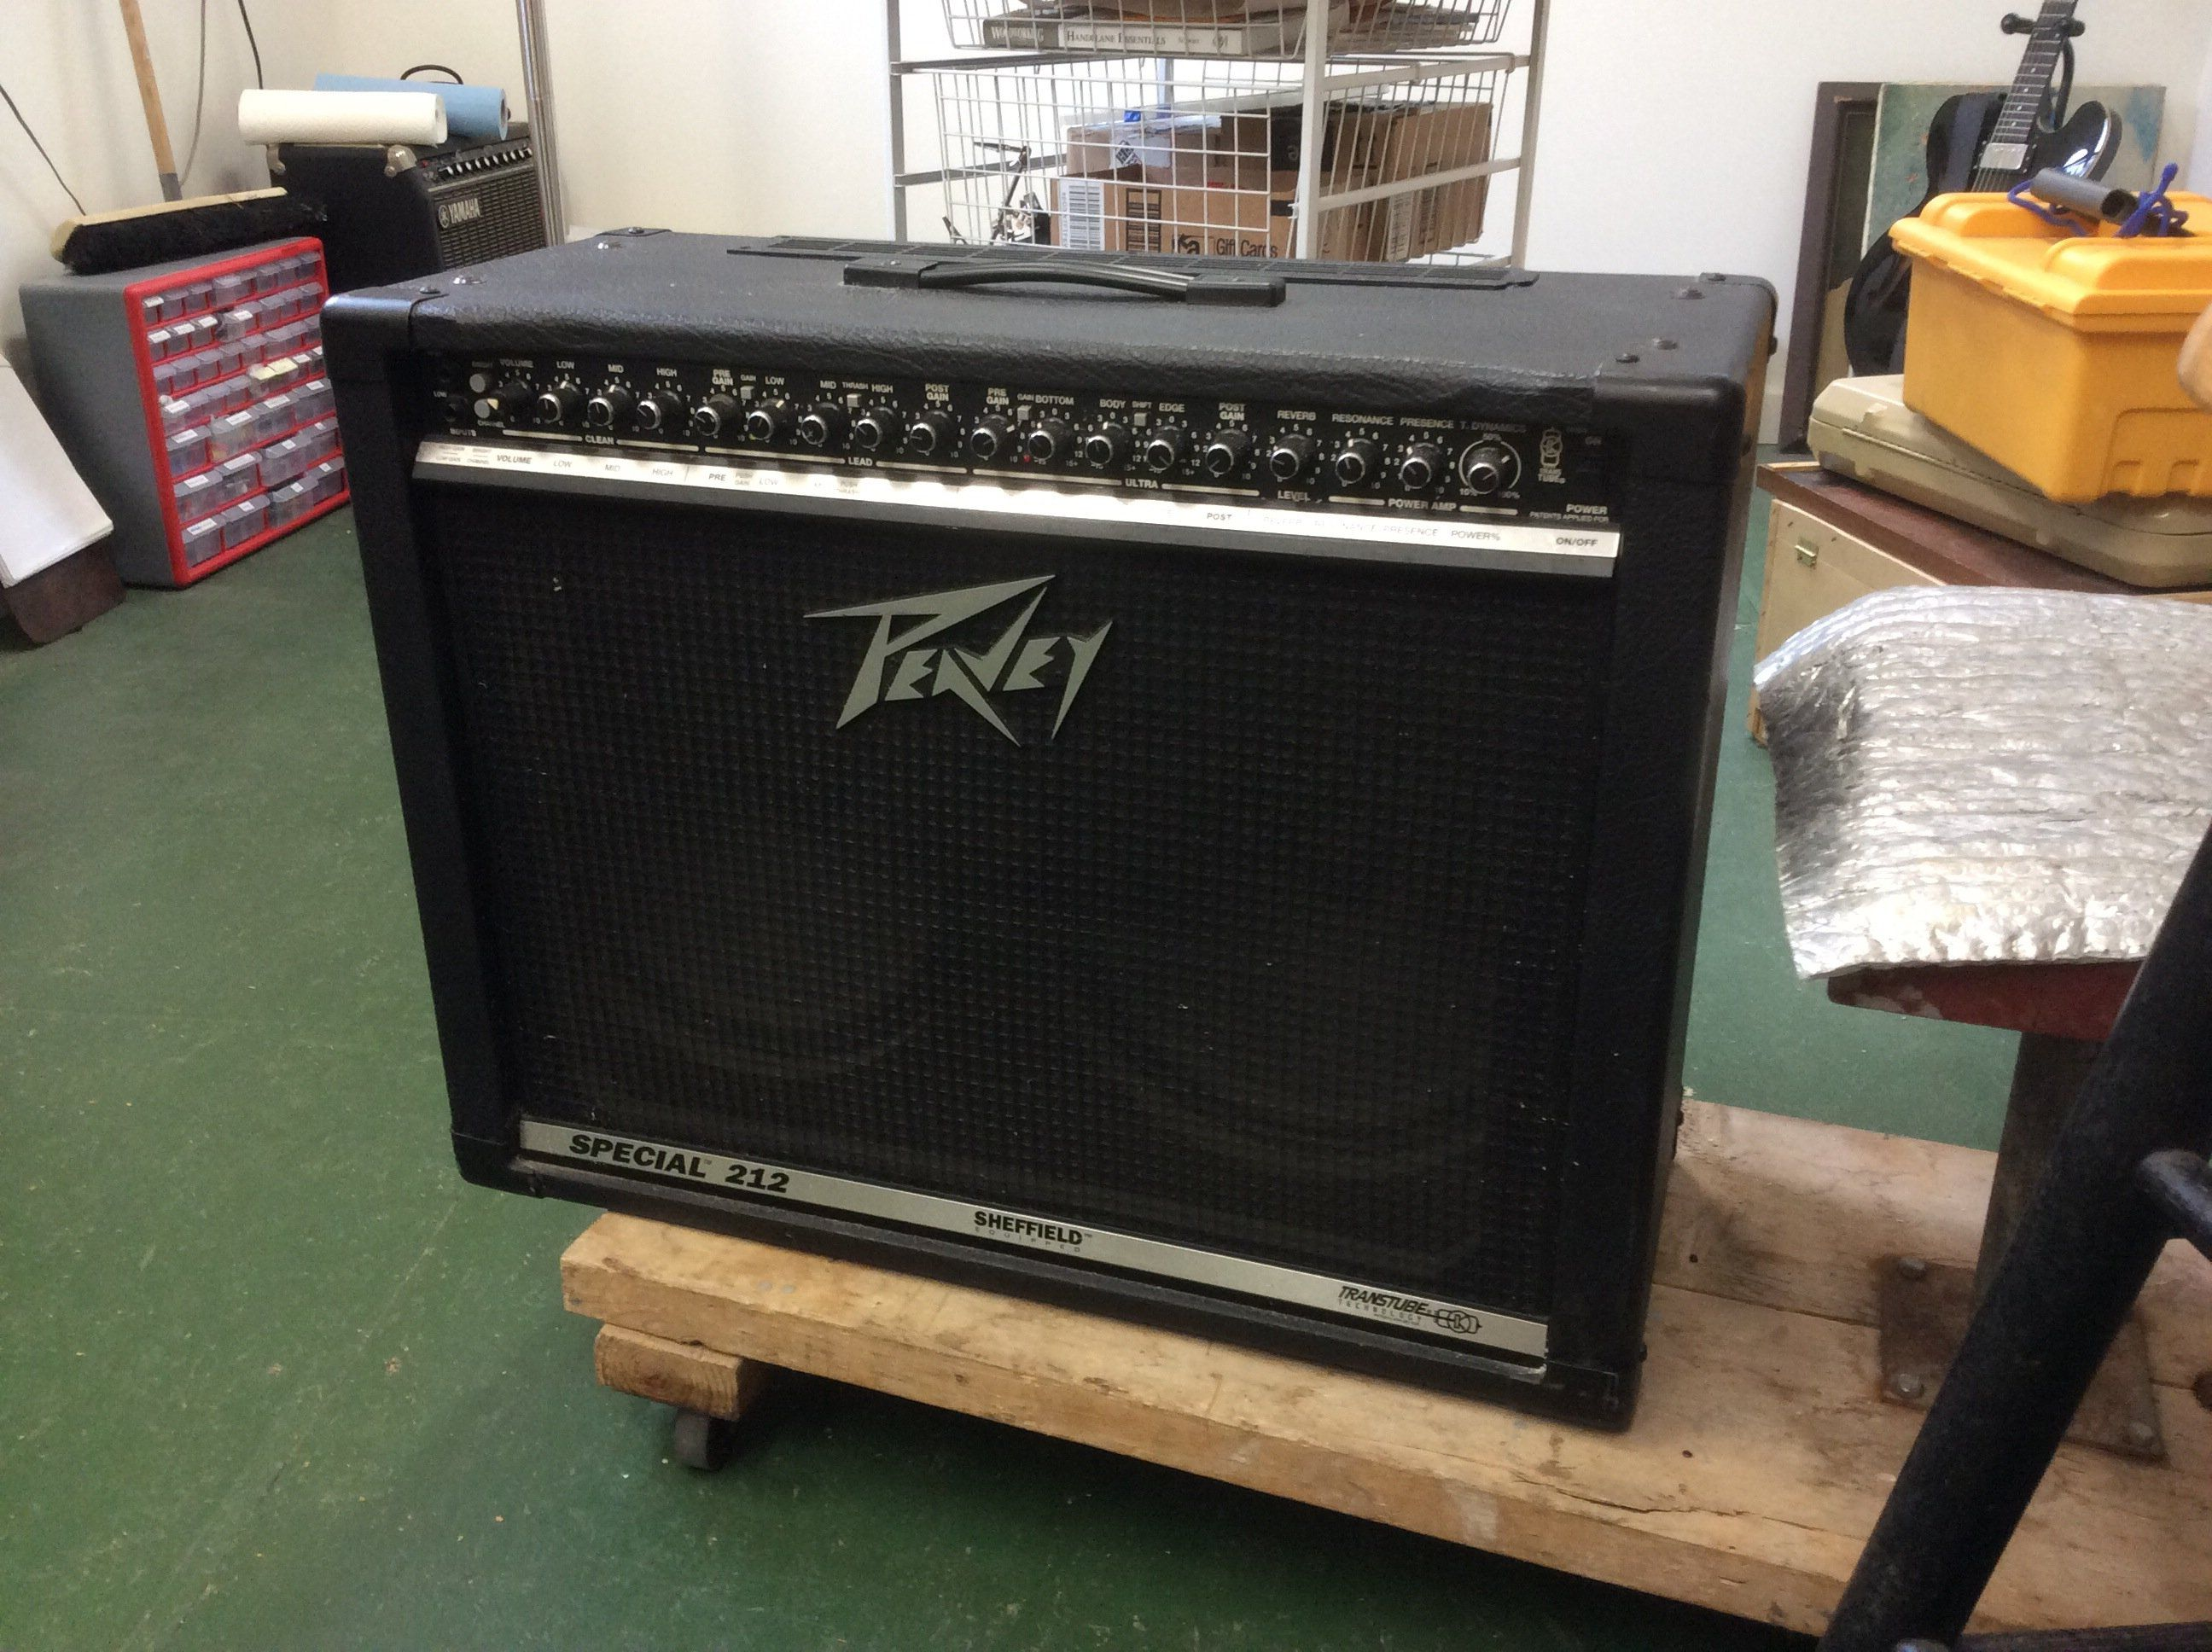 peavey transtube special 212 arrives in the shop the gear page. Black Bedroom Furniture Sets. Home Design Ideas